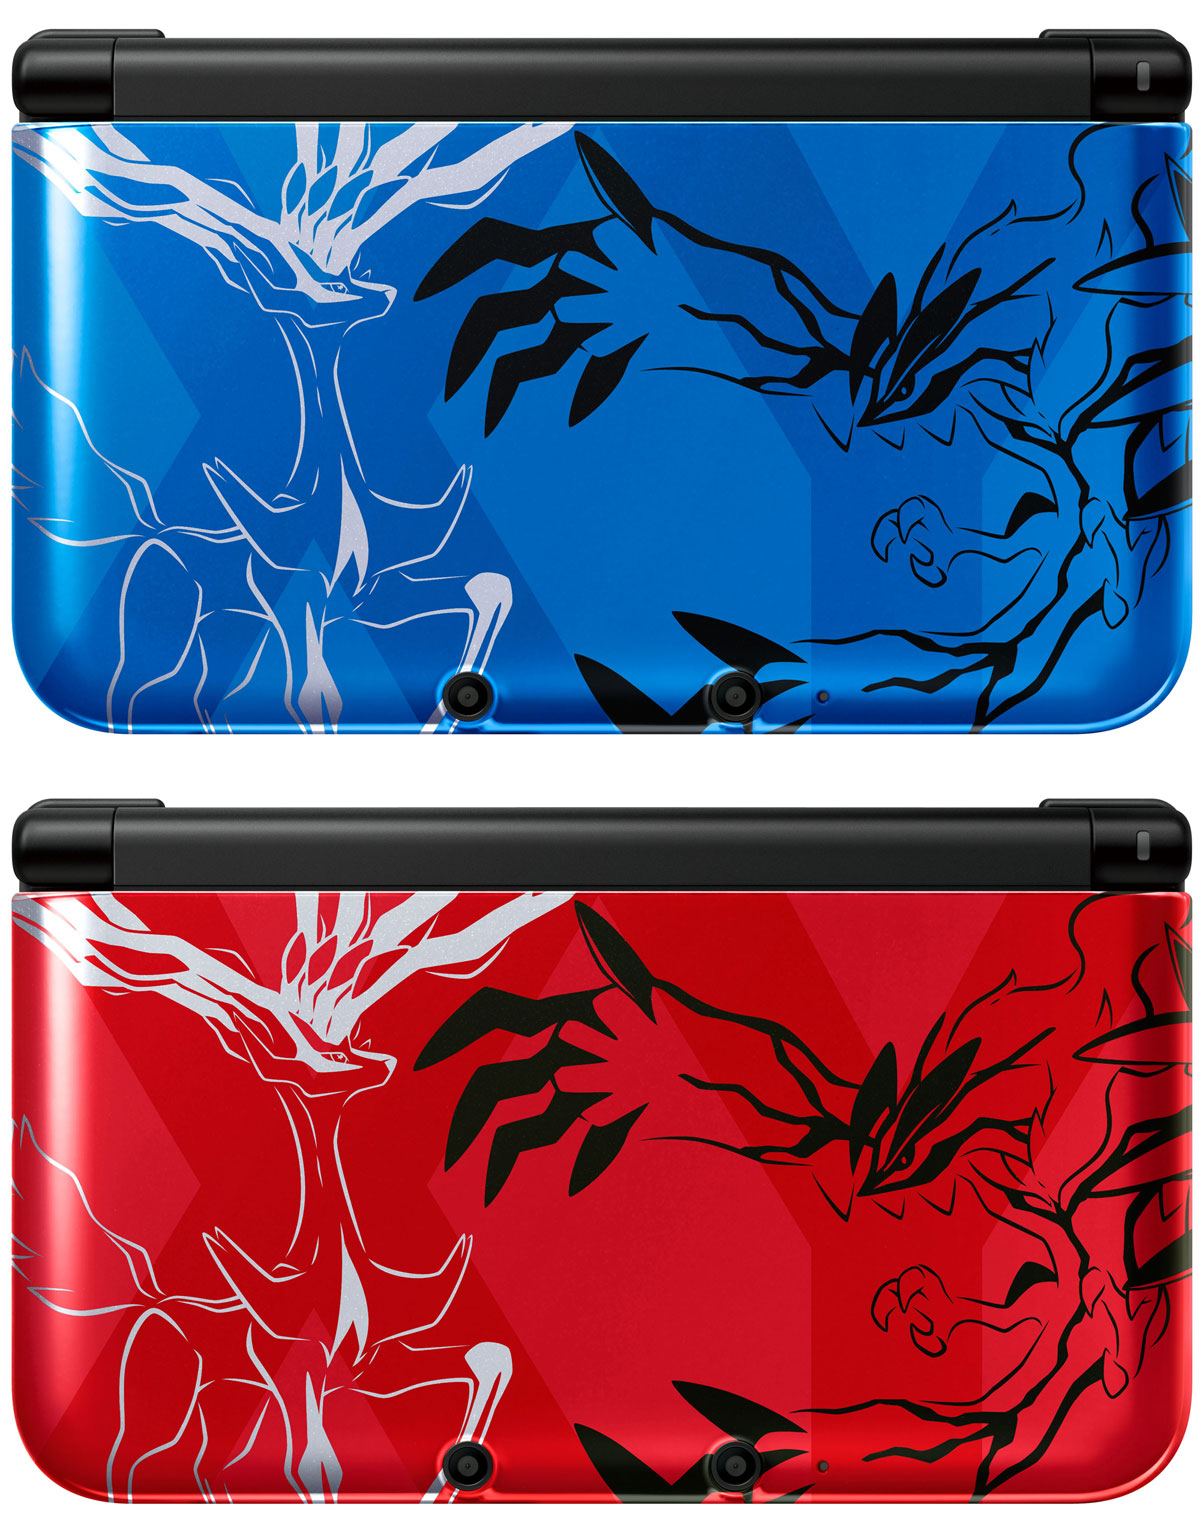 3DS XL Edicion Pokemon X/Y Pokemon_x___pokemon_y-2349020